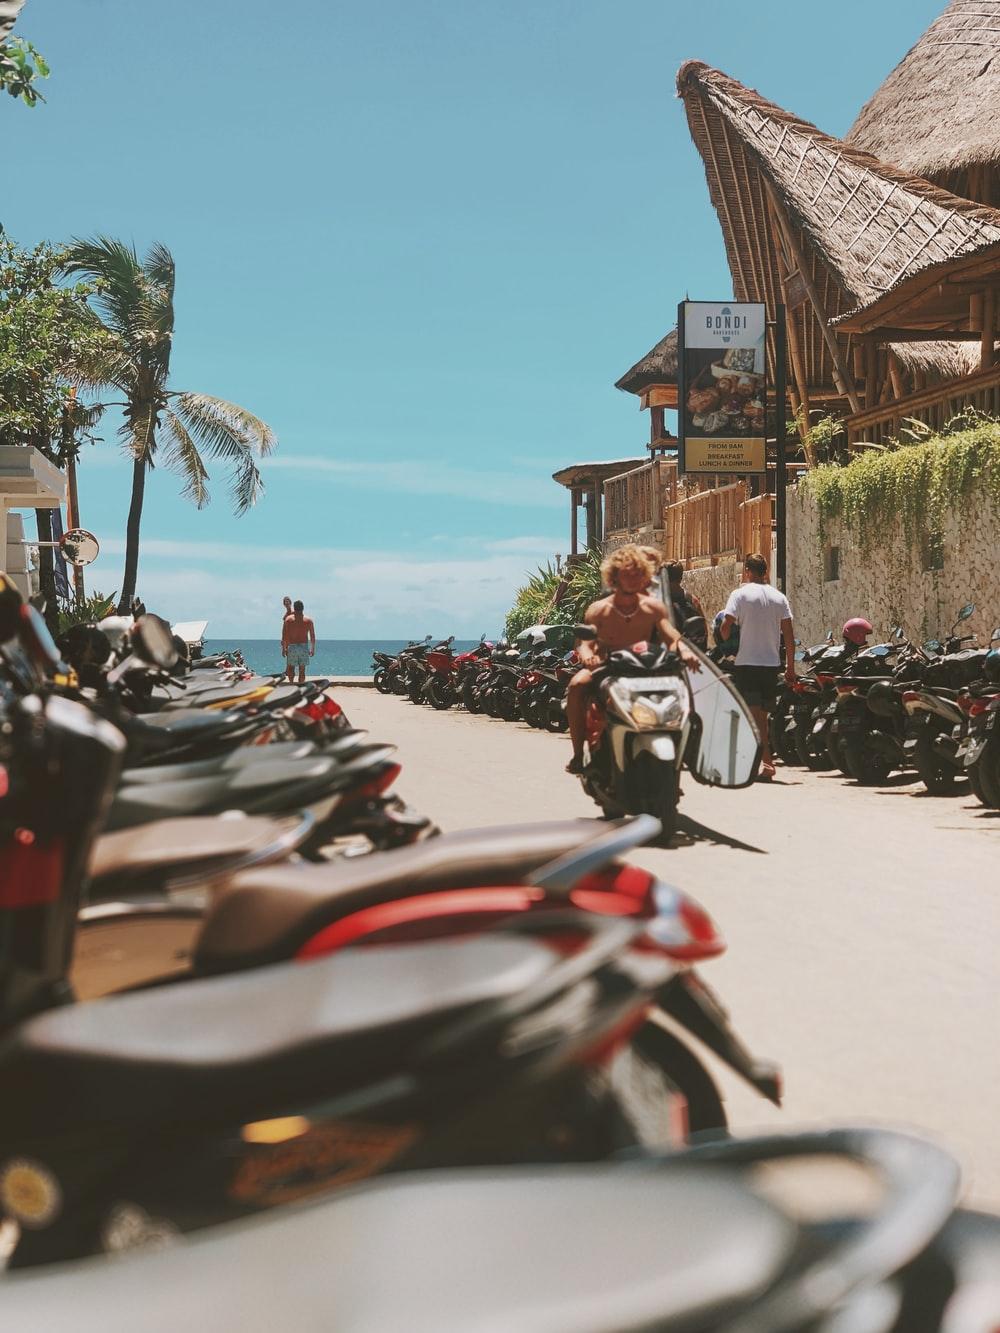 parked motorcycles near beach